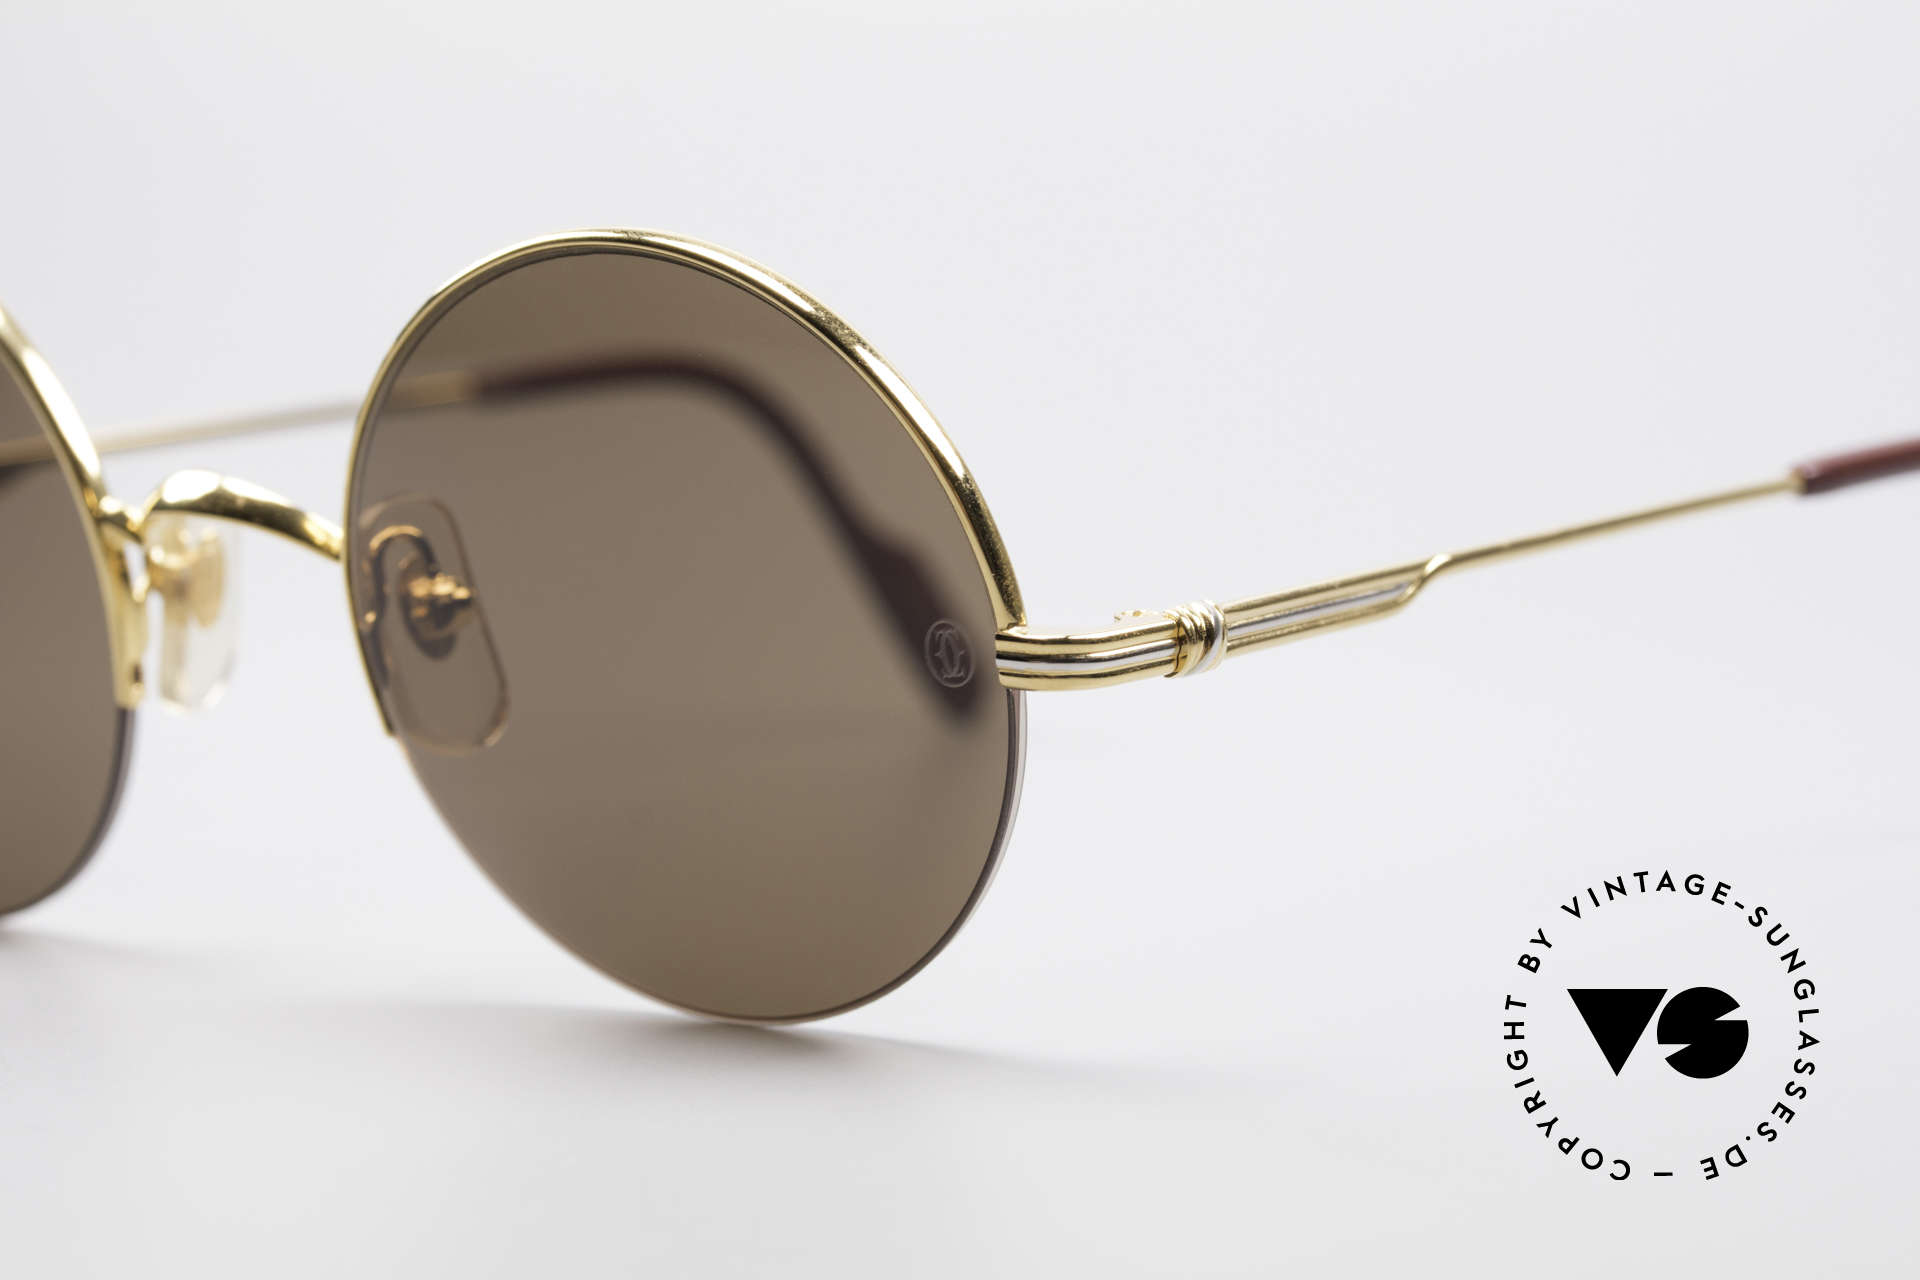 Cartier Mayfair - M Luxury Round Sunglasses, 22ct gold-plated flexible frame; semi-rimless, Made for Men and Women